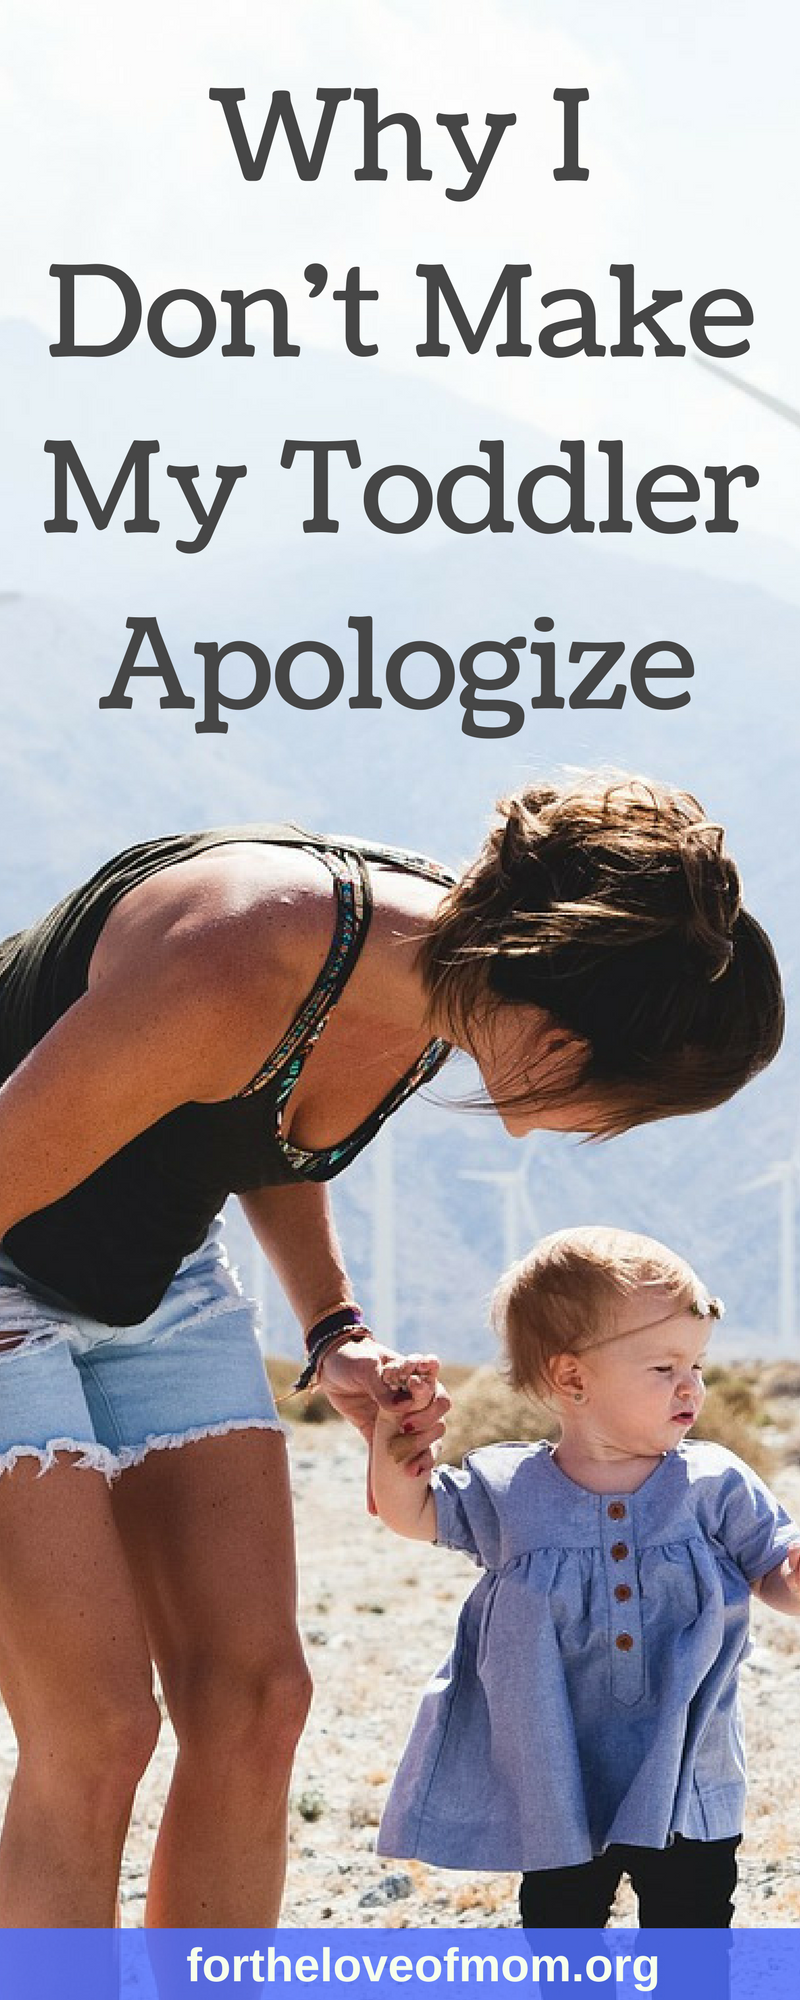 Why I Don't Make My Toddler Apologize | Should You Make Your Toddler Say I'm Sorry? | #toddlers | #parenting